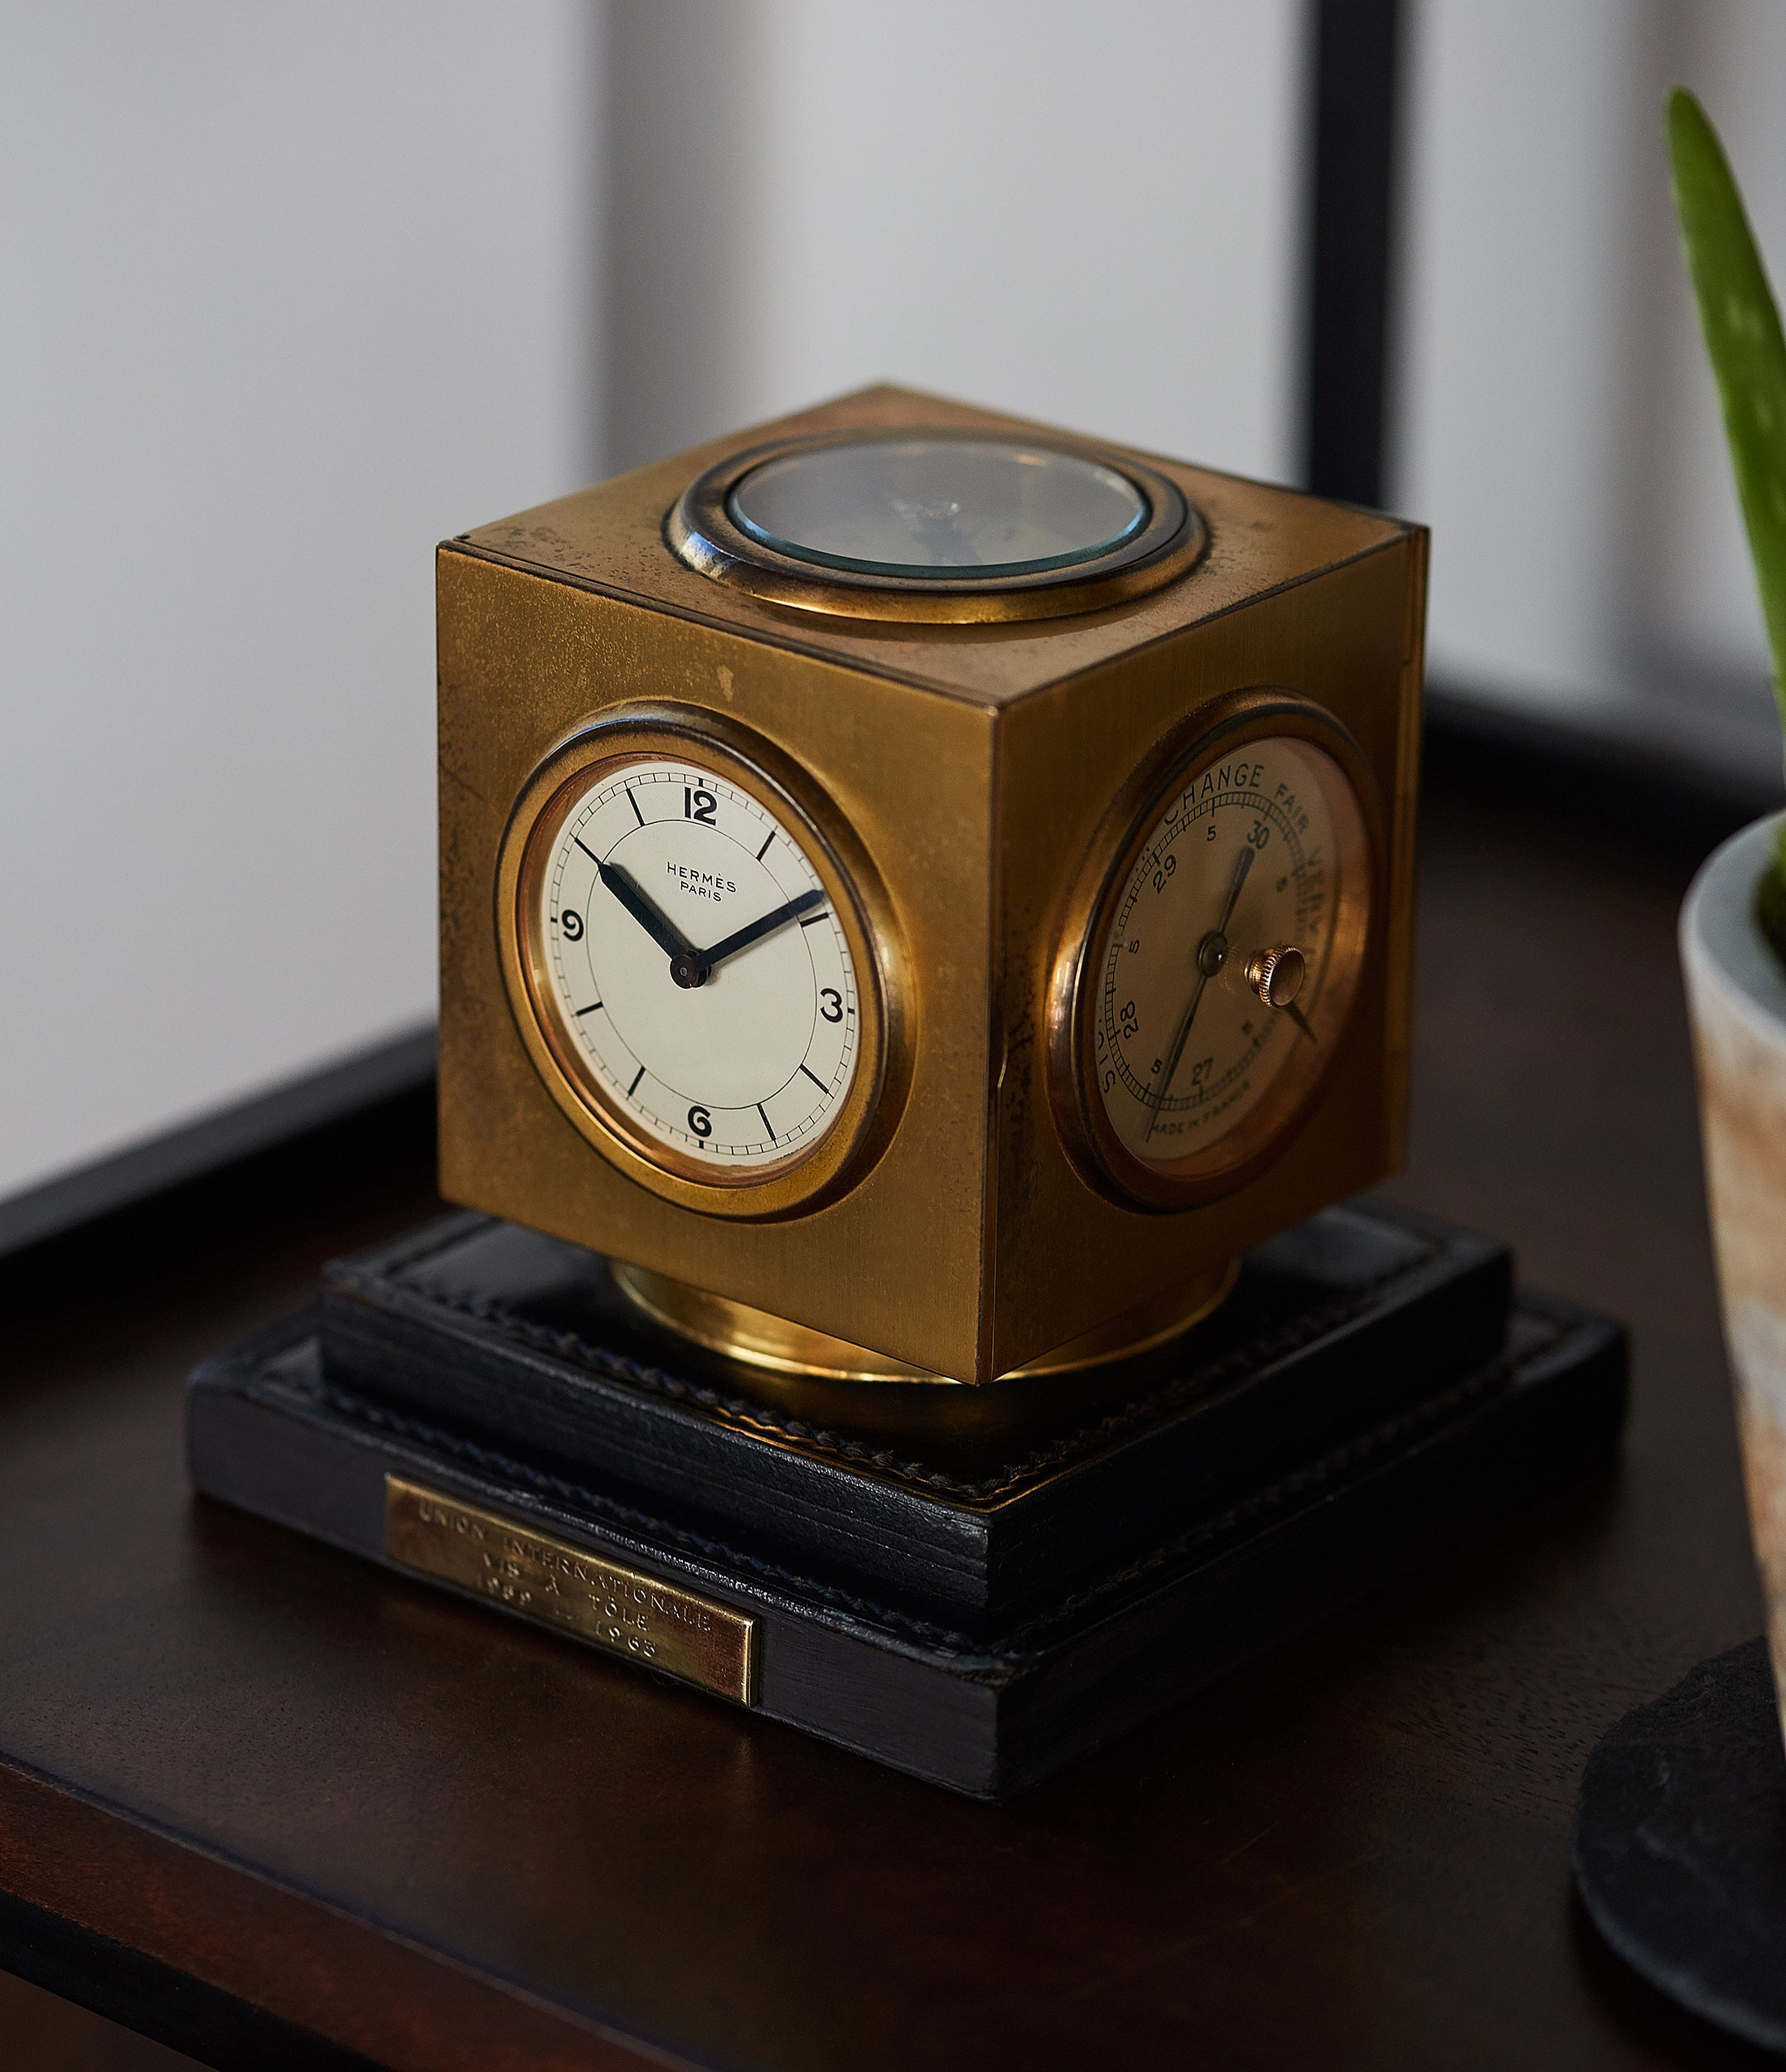 Hermes Paris Compendium 8-day Art Deco brass calendar desk clock for sale online at A Collected Man for collectors of rare objects